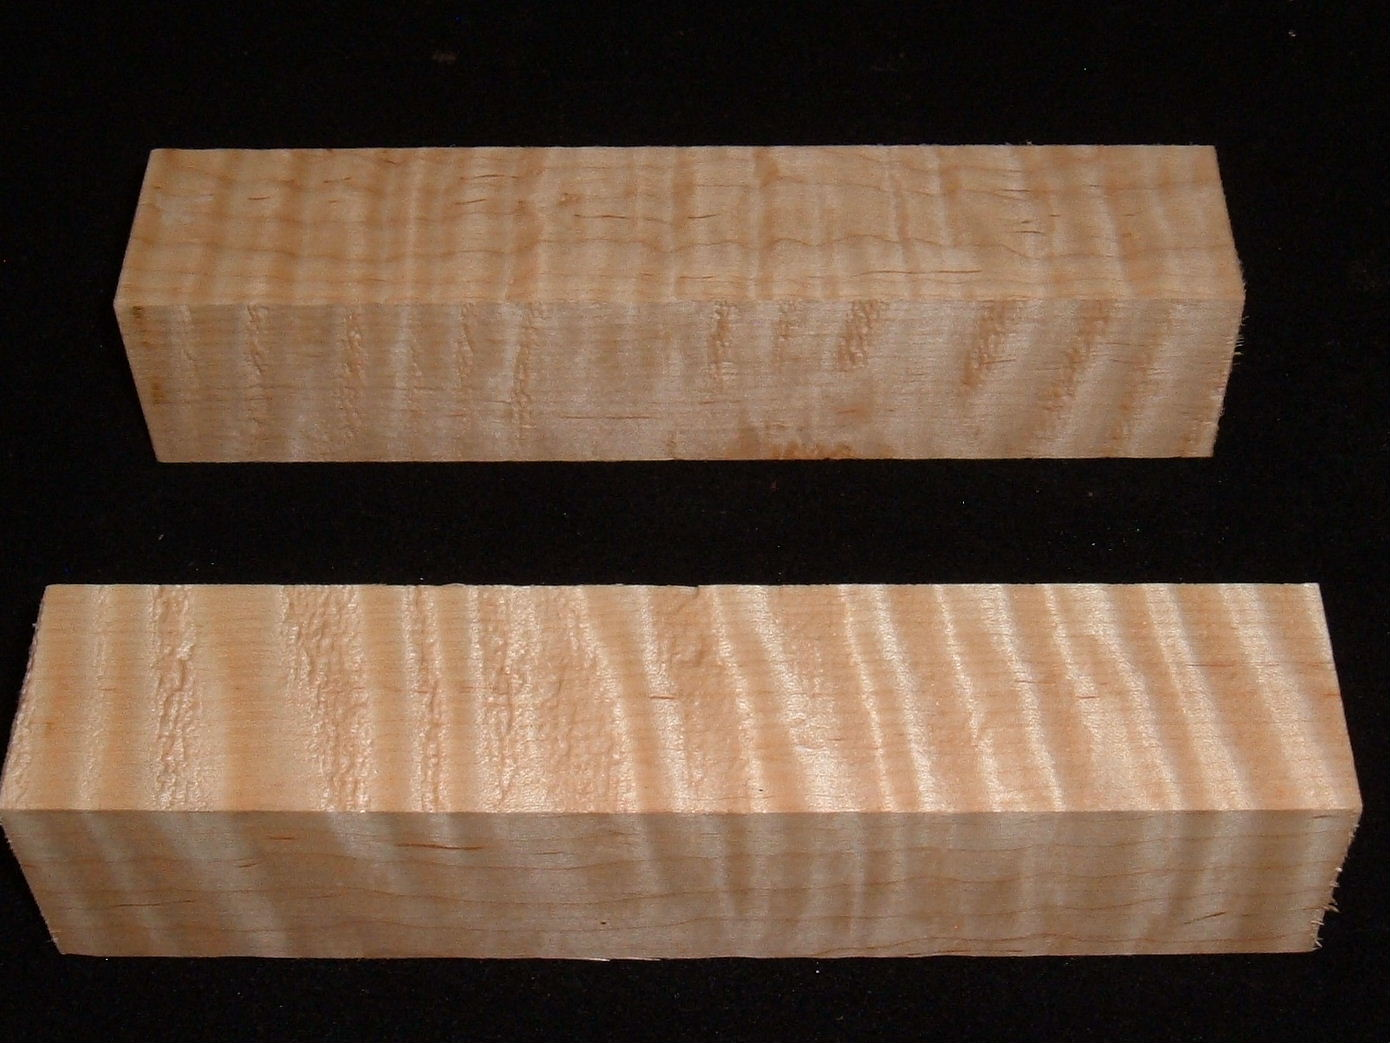 MS-2916n,(2) 1-13/4x1-3/4x8, Curly Tiger Maple, turning blocks